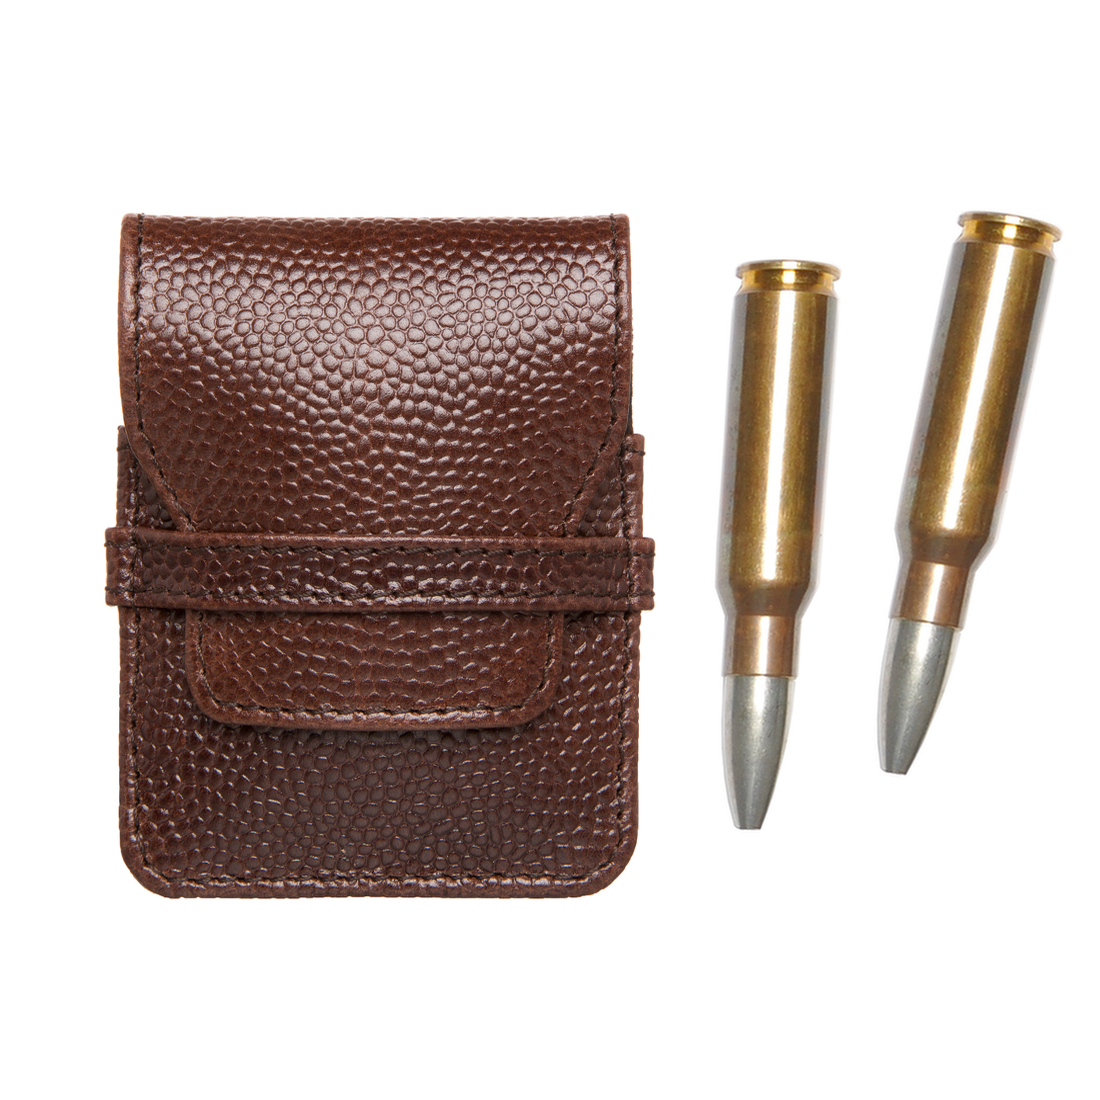 Cartridge Case - Eagle